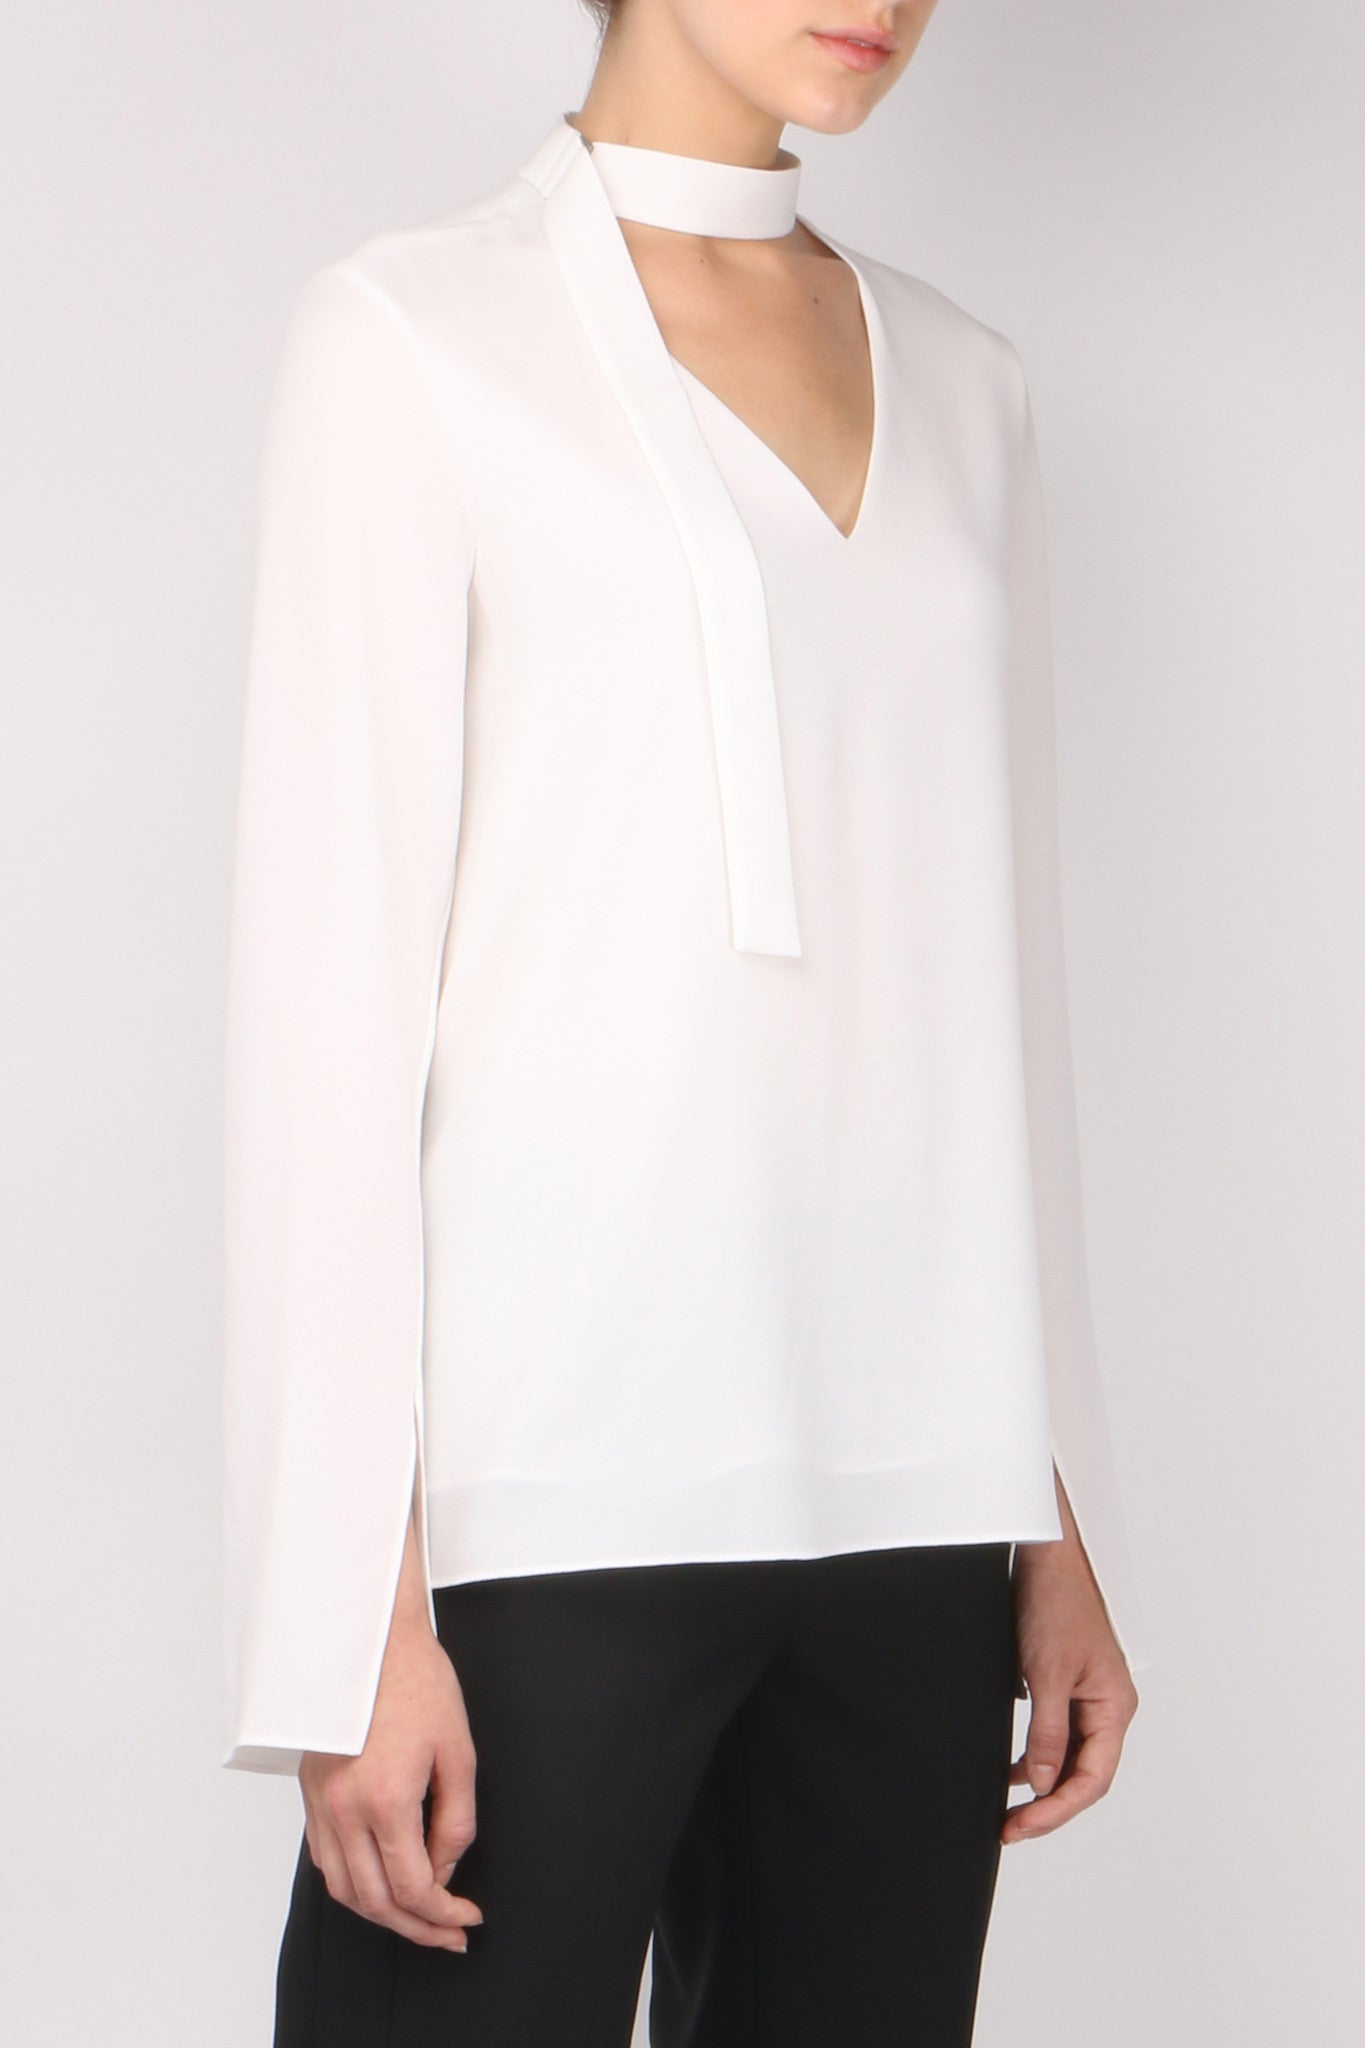 Tibi Tie Neck Top